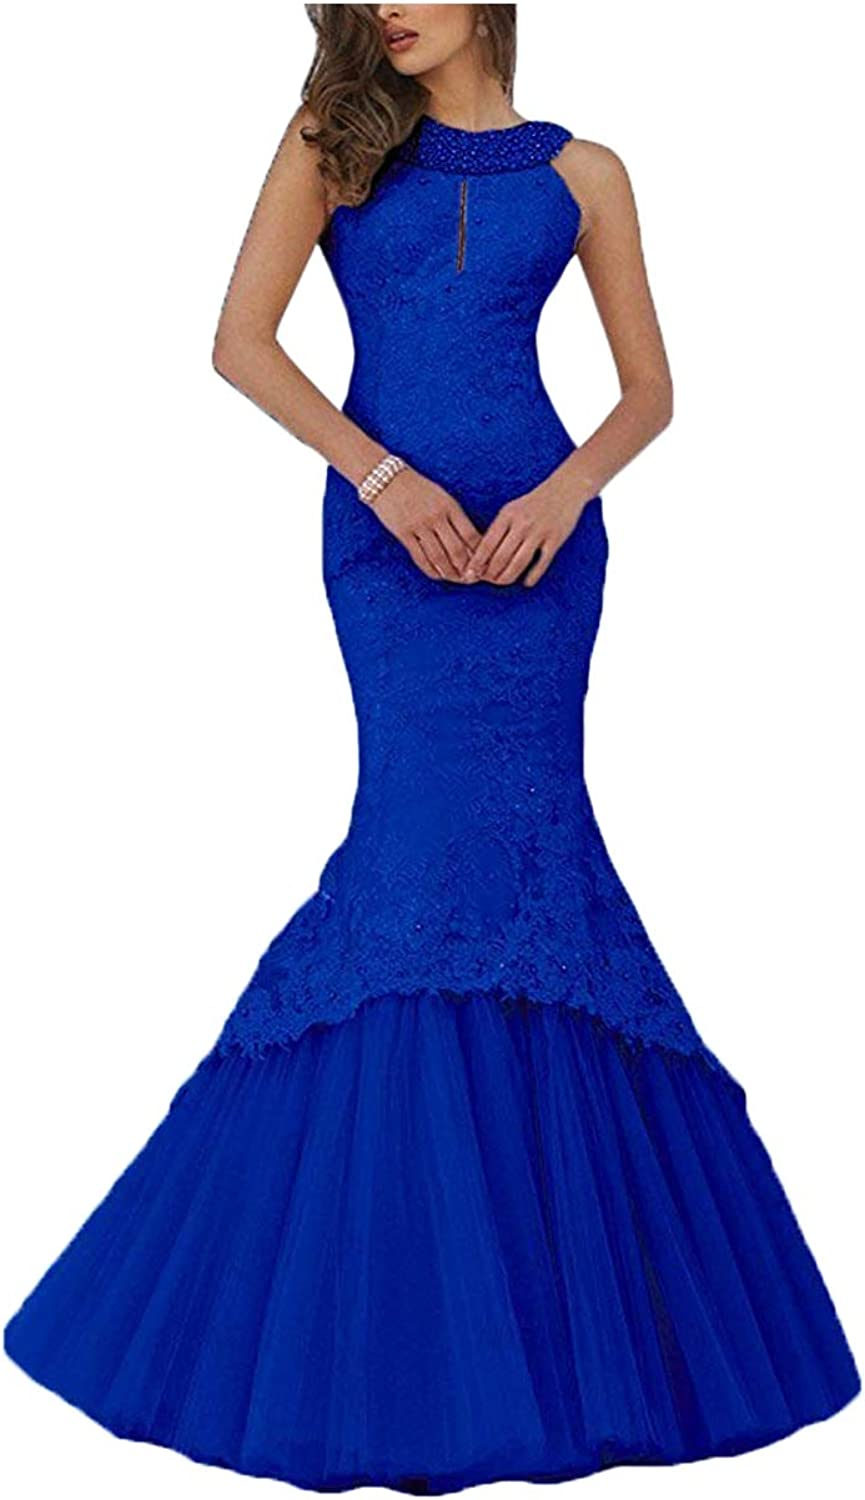 BridalAffair Elegant Women's Mermaid Prom Dress Sleeveless Party Evening Gowns with lace Appliques and Beads